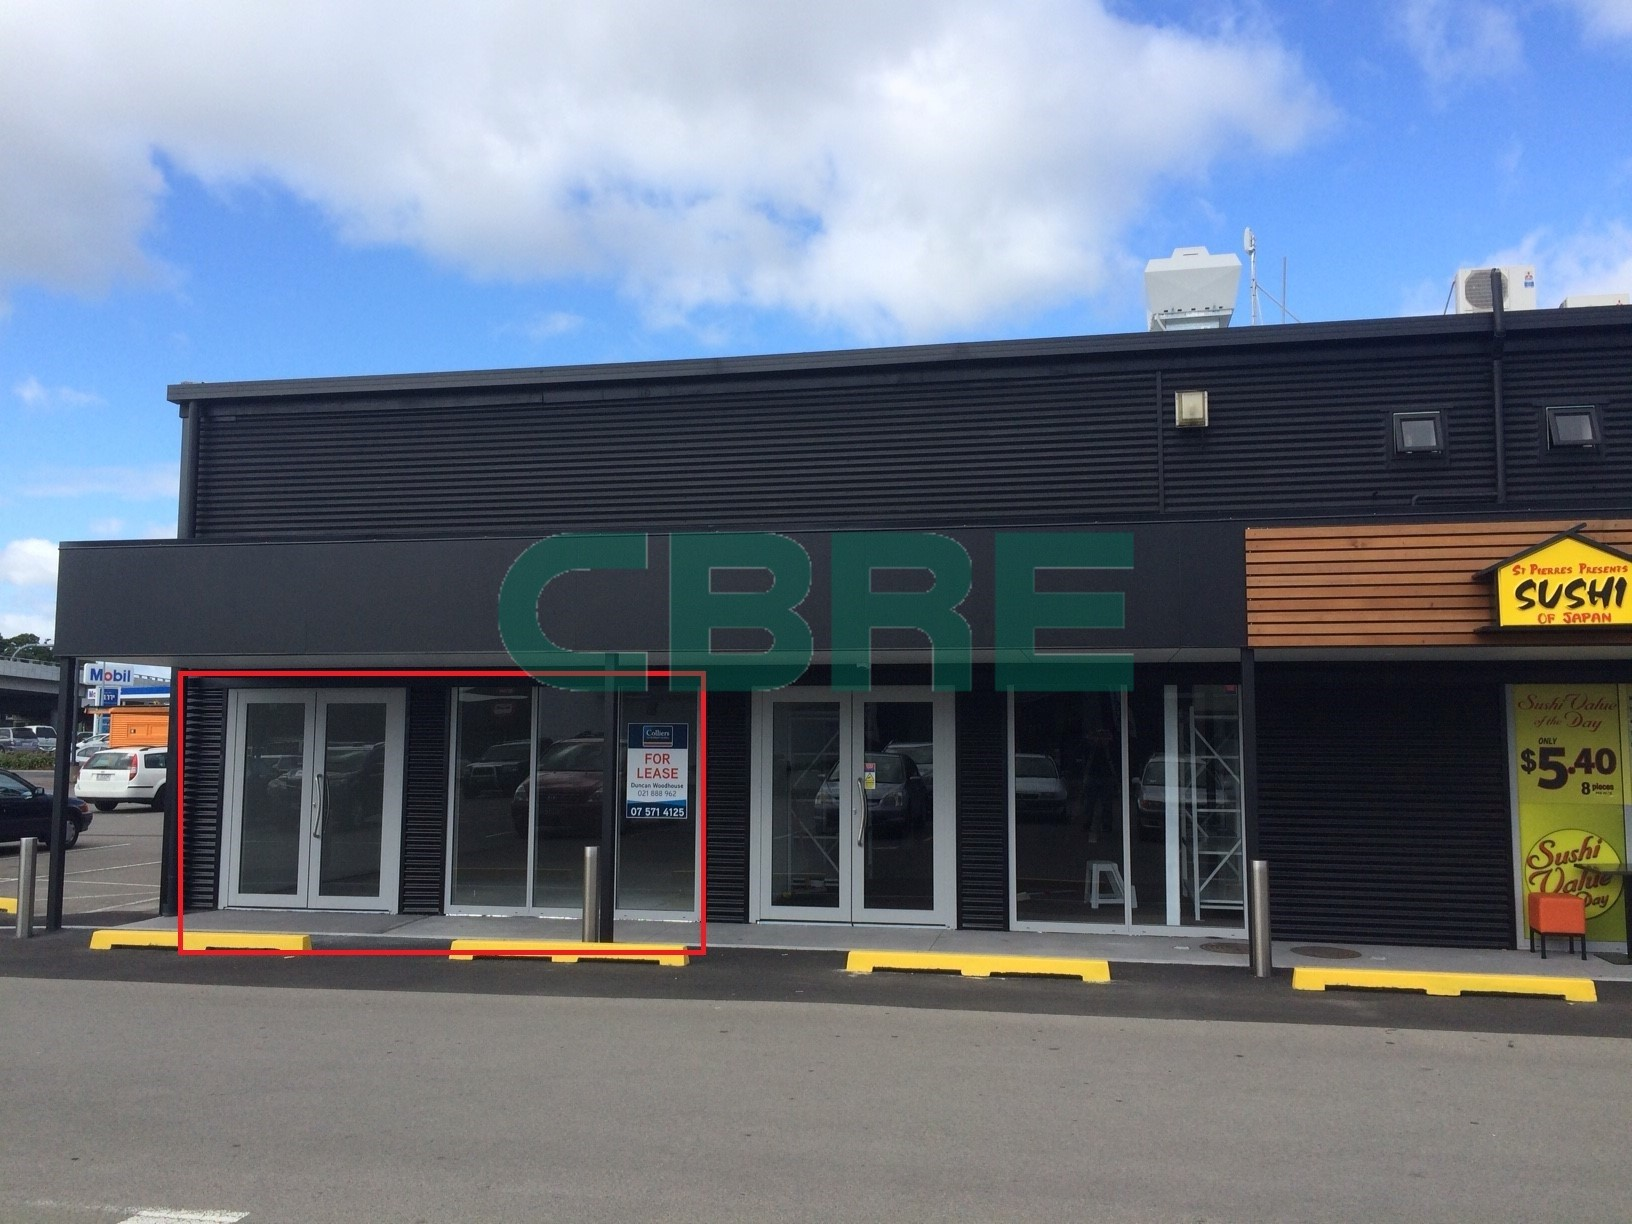 Retail  for Lease Tauranga Central